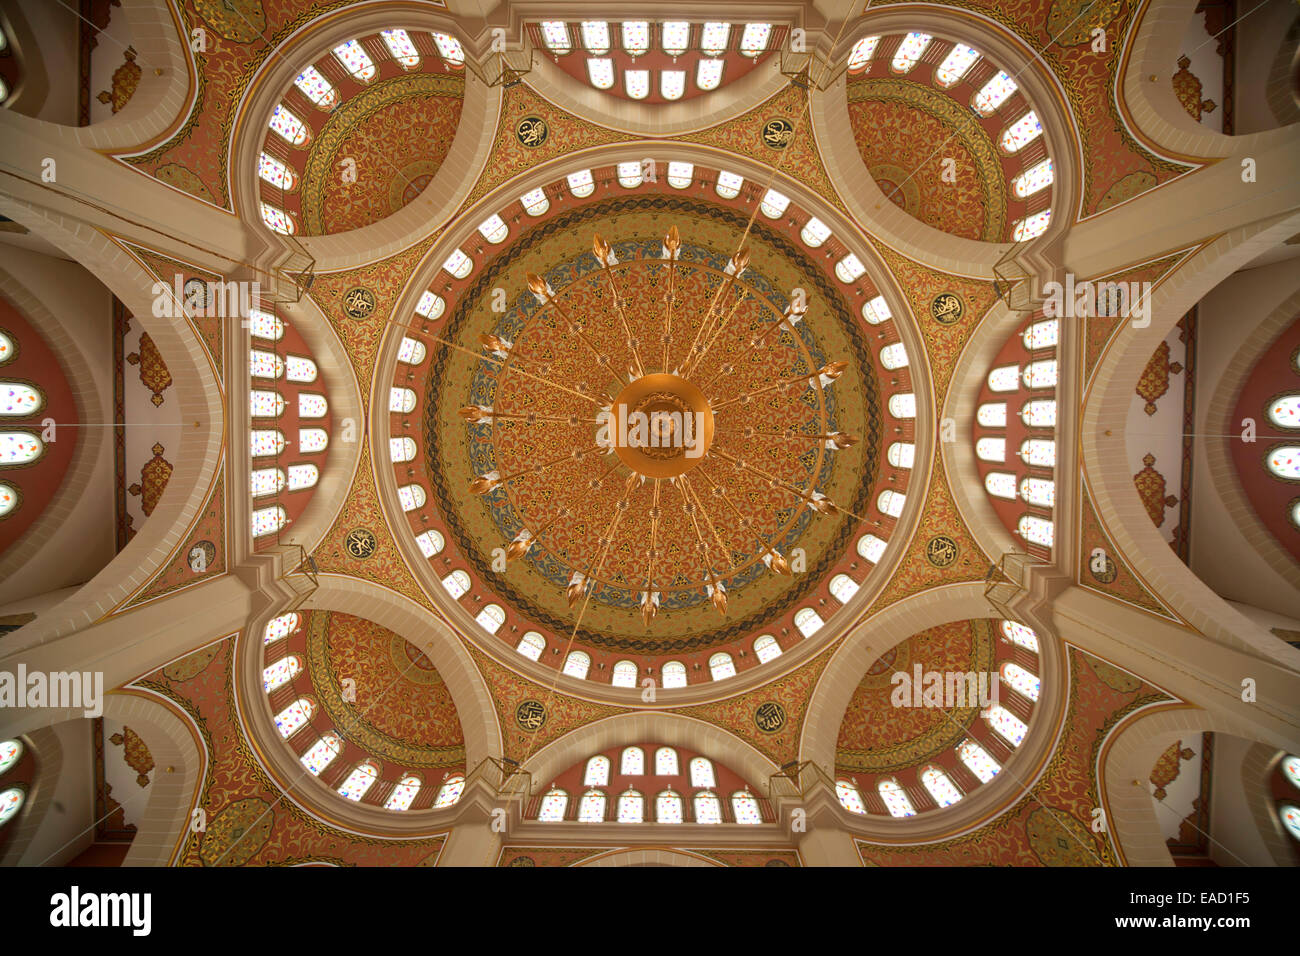 Ceiling of the Nizamiye Turkish Masjid Mosque in Johannesburg, Gauteng, South Africa - Stock Image